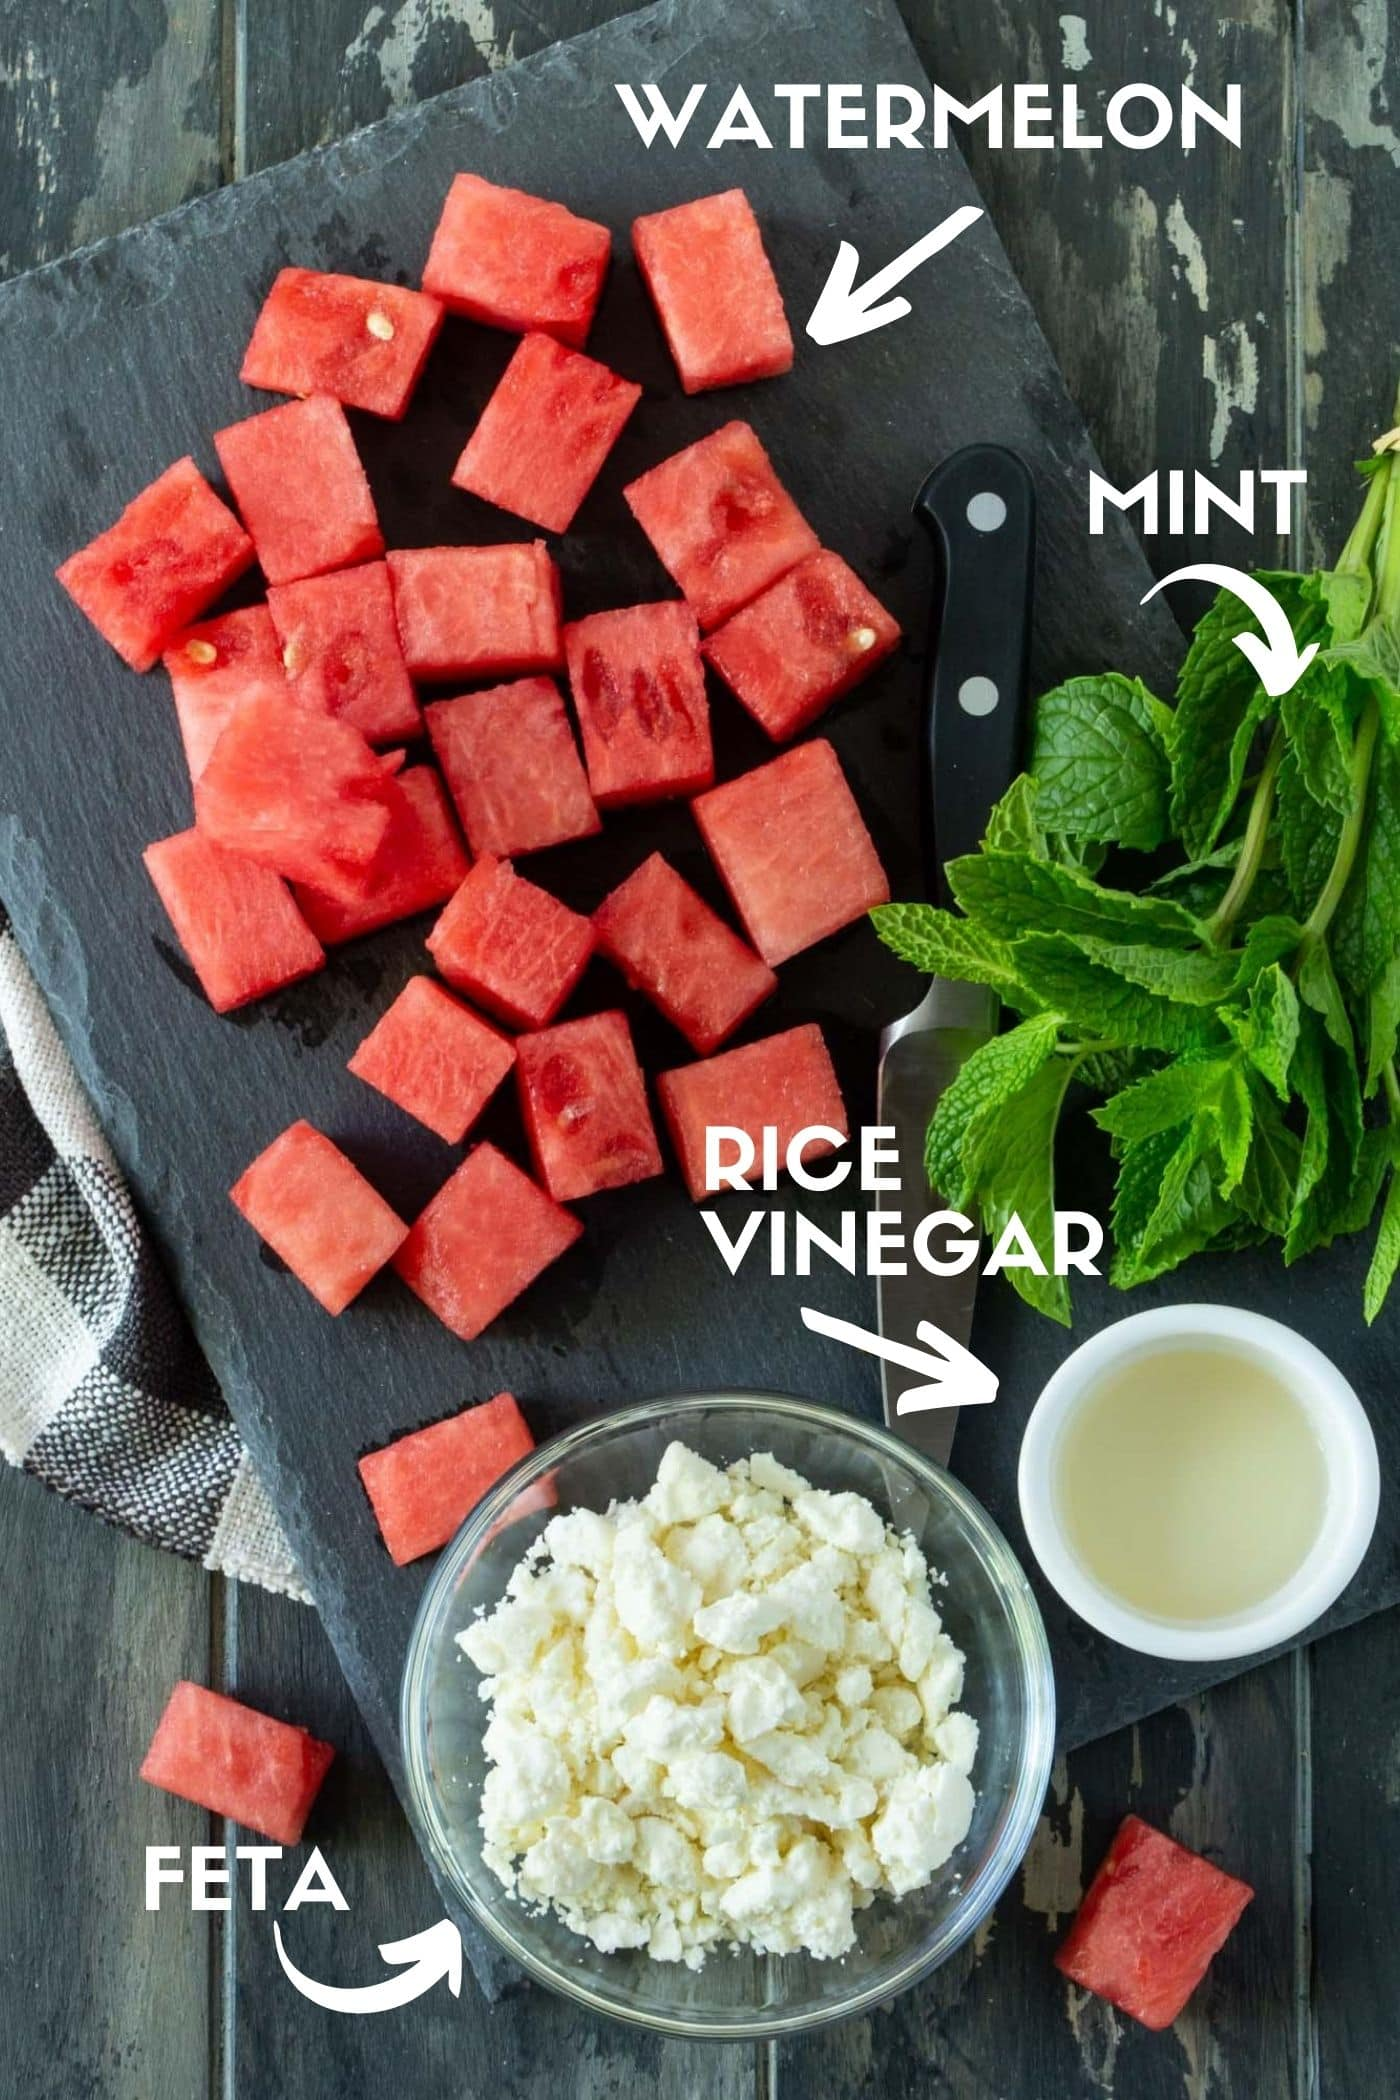 Dark gray cutting board filled with fresh watermelon cubes, salty feta cheese, fresh mint sprigs and rice vinegar.